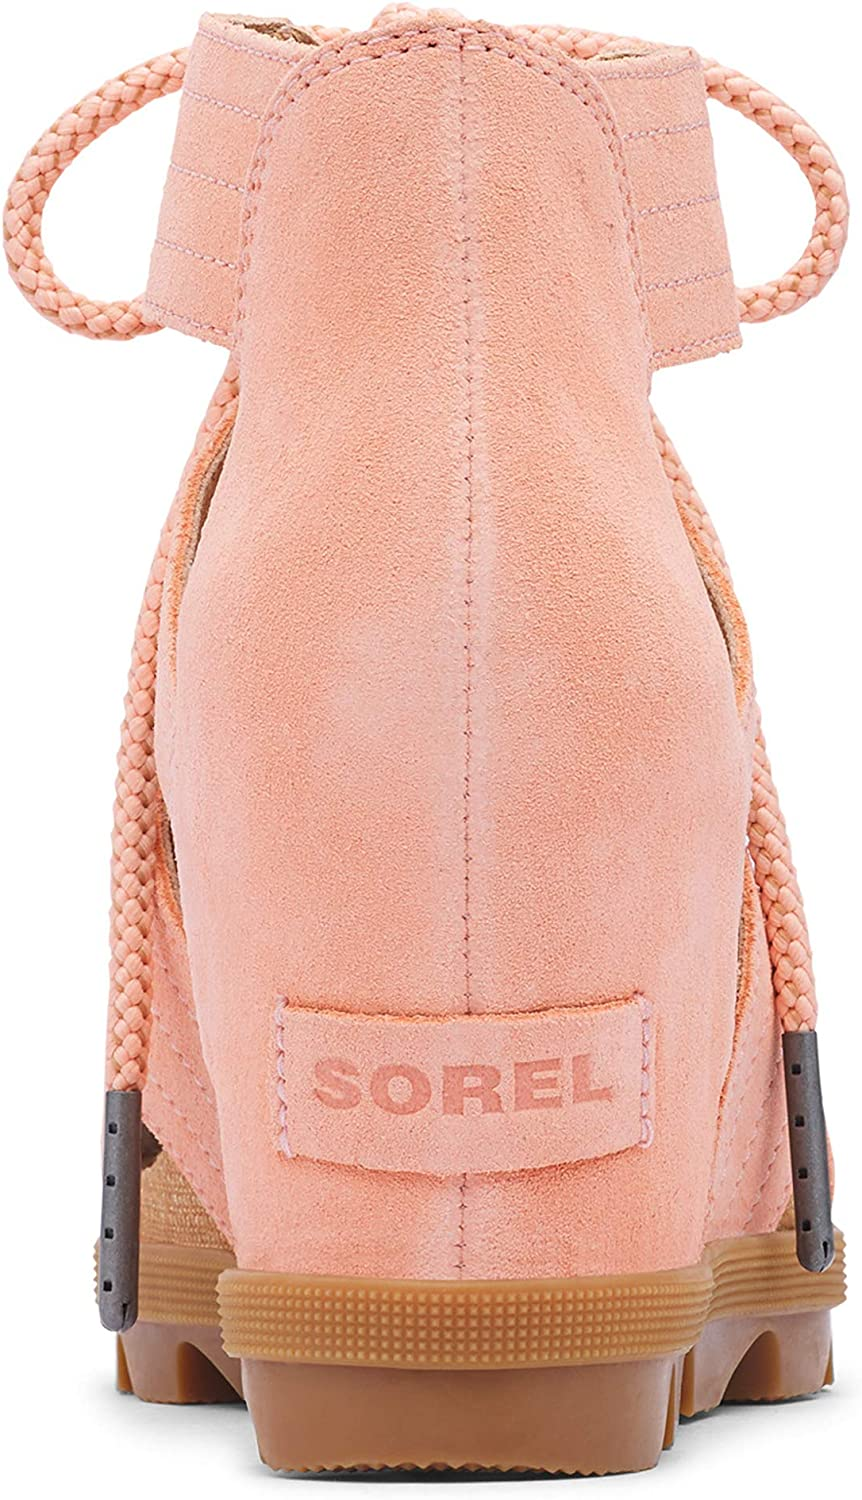 Sorel Women's Joanie II Lace Wedge Sandals Melón Tónico